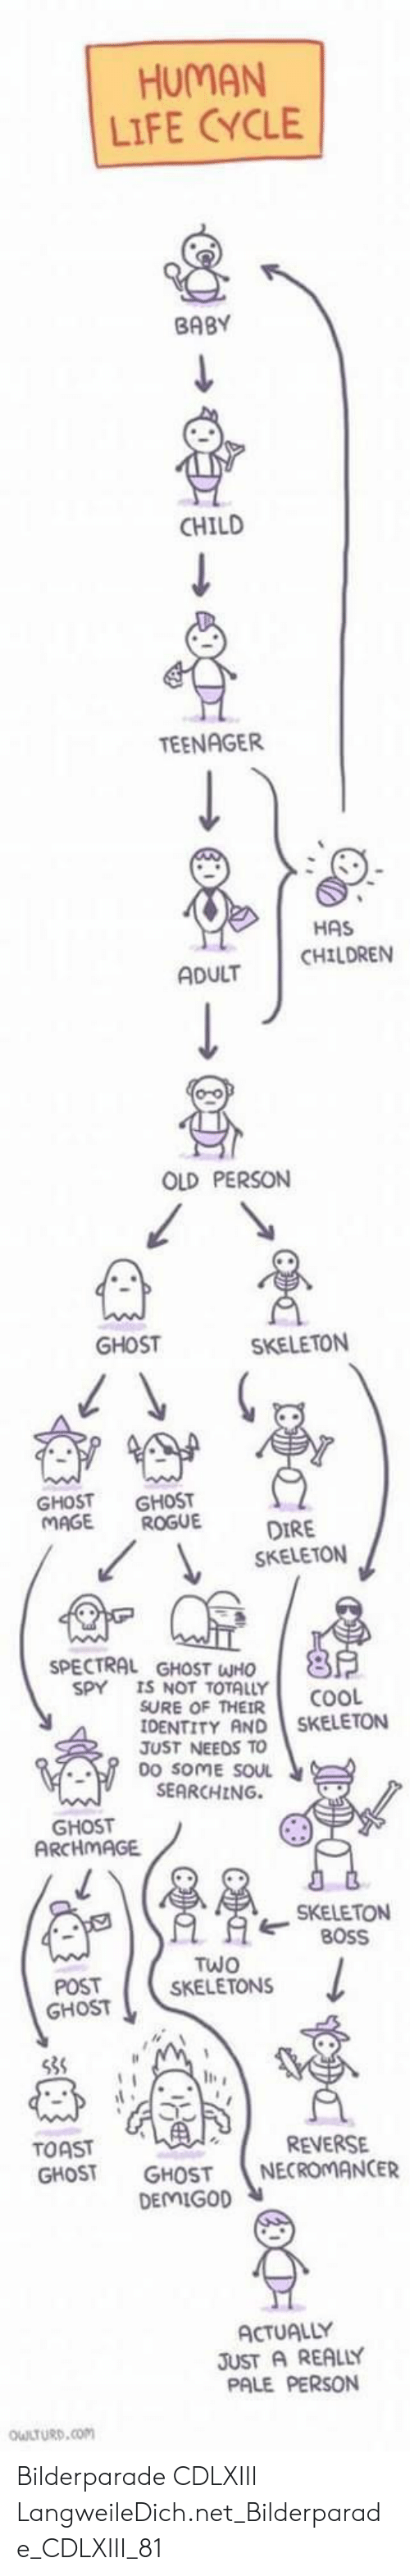 mage: HUMAN  LIFE CYCLE  BABY  CHILD  TEENAGER  HAS  ADULT CHILDREN  OLD PERSON  GHOST  SKELETON  GHOST GHOST  MAGE ROGU  DIRE  SKELETON  SPECTRAL GHOST WHO  SPY  IS NOT TOTALLY  SURE OF THEIR  IDENTITY AND SKELETON  JUST NEEDS TO  0O SOME SOUL  COOL  SEARCHING.  GHOST  ARCHMAGE  SKELETON  ピBOSS  TWO  SKELETON!S  POST  GHOST  le  TOAST  GHOST GHOST NECROMANCER  REVERSE  DEMIGOD  ACTUALLY  JUST A REALLY  PALE PERSON  LTURD,Com Bilderparade CDLXIII LangweileDich.net_Bilderparade_CDLXIII_81